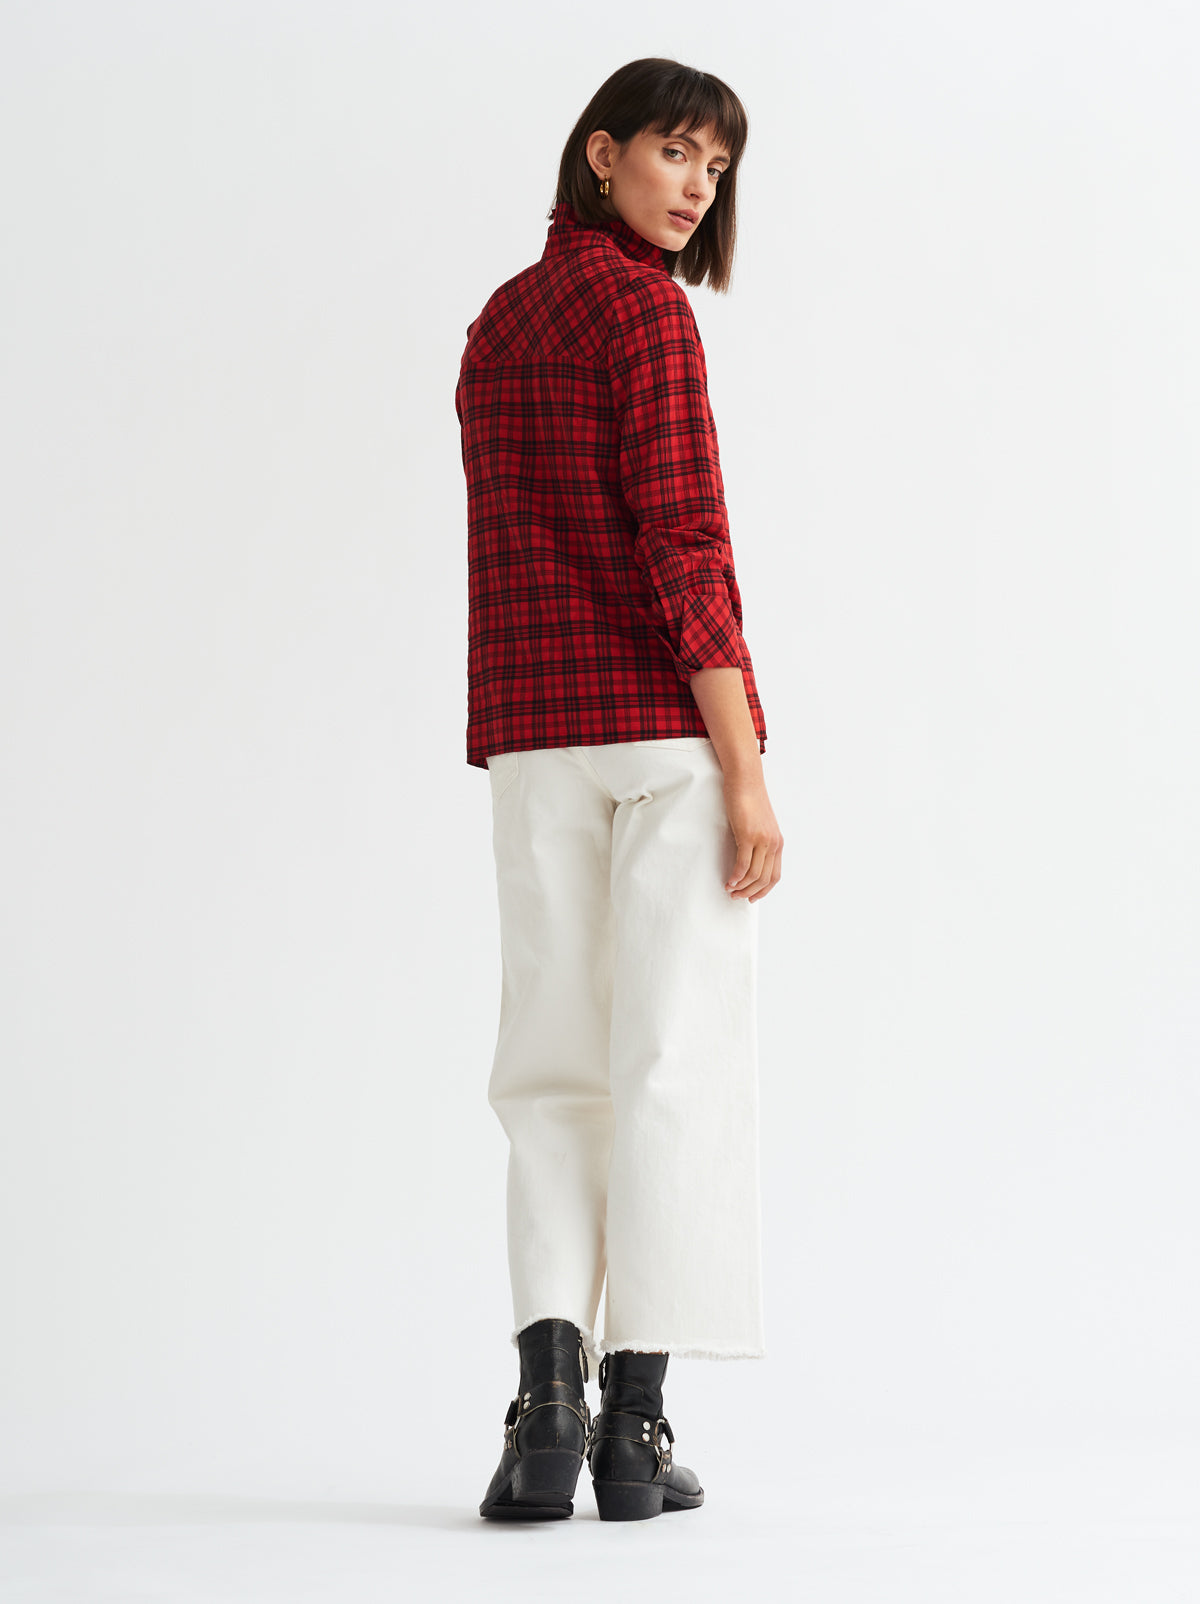 Elsie Red Check Frill Collar Shirt by KITRI Studio